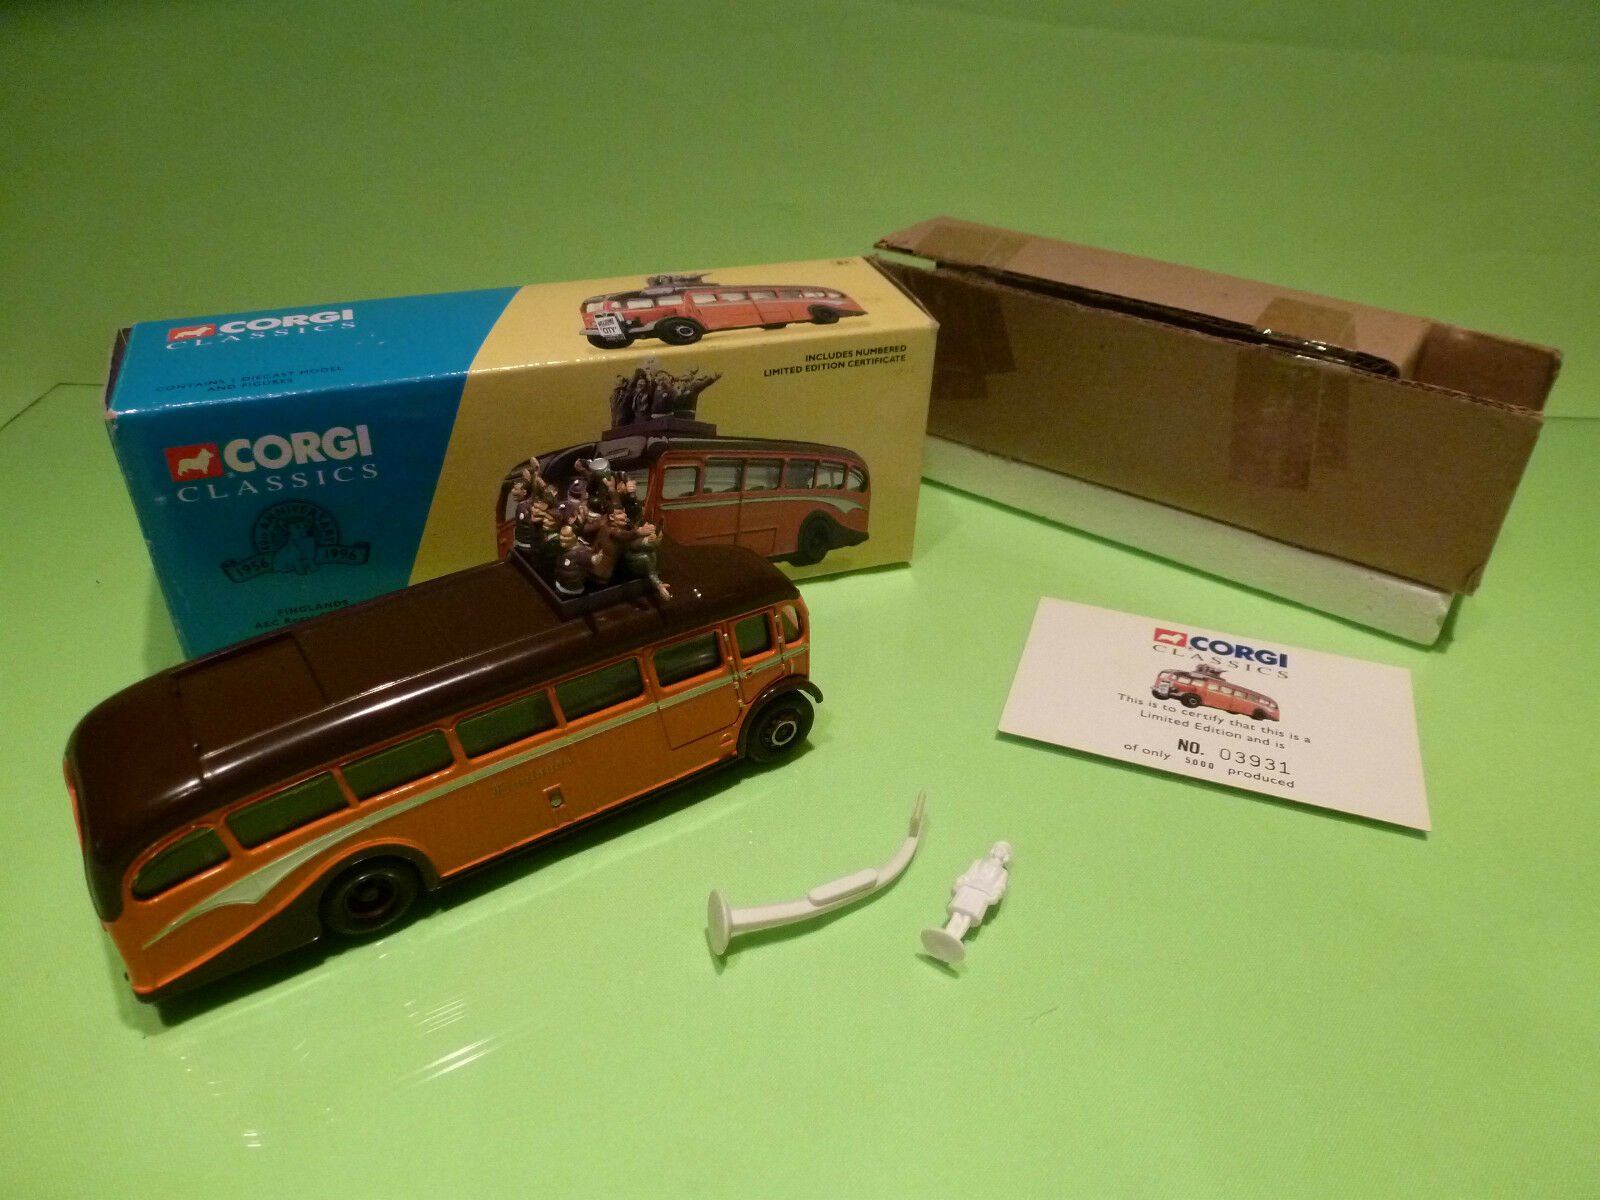 CORGI TOYS CLASSICS 33201 AEC REGAL COUCH SET - FINGLANDS 1 50- NEAR MINT IN BOX